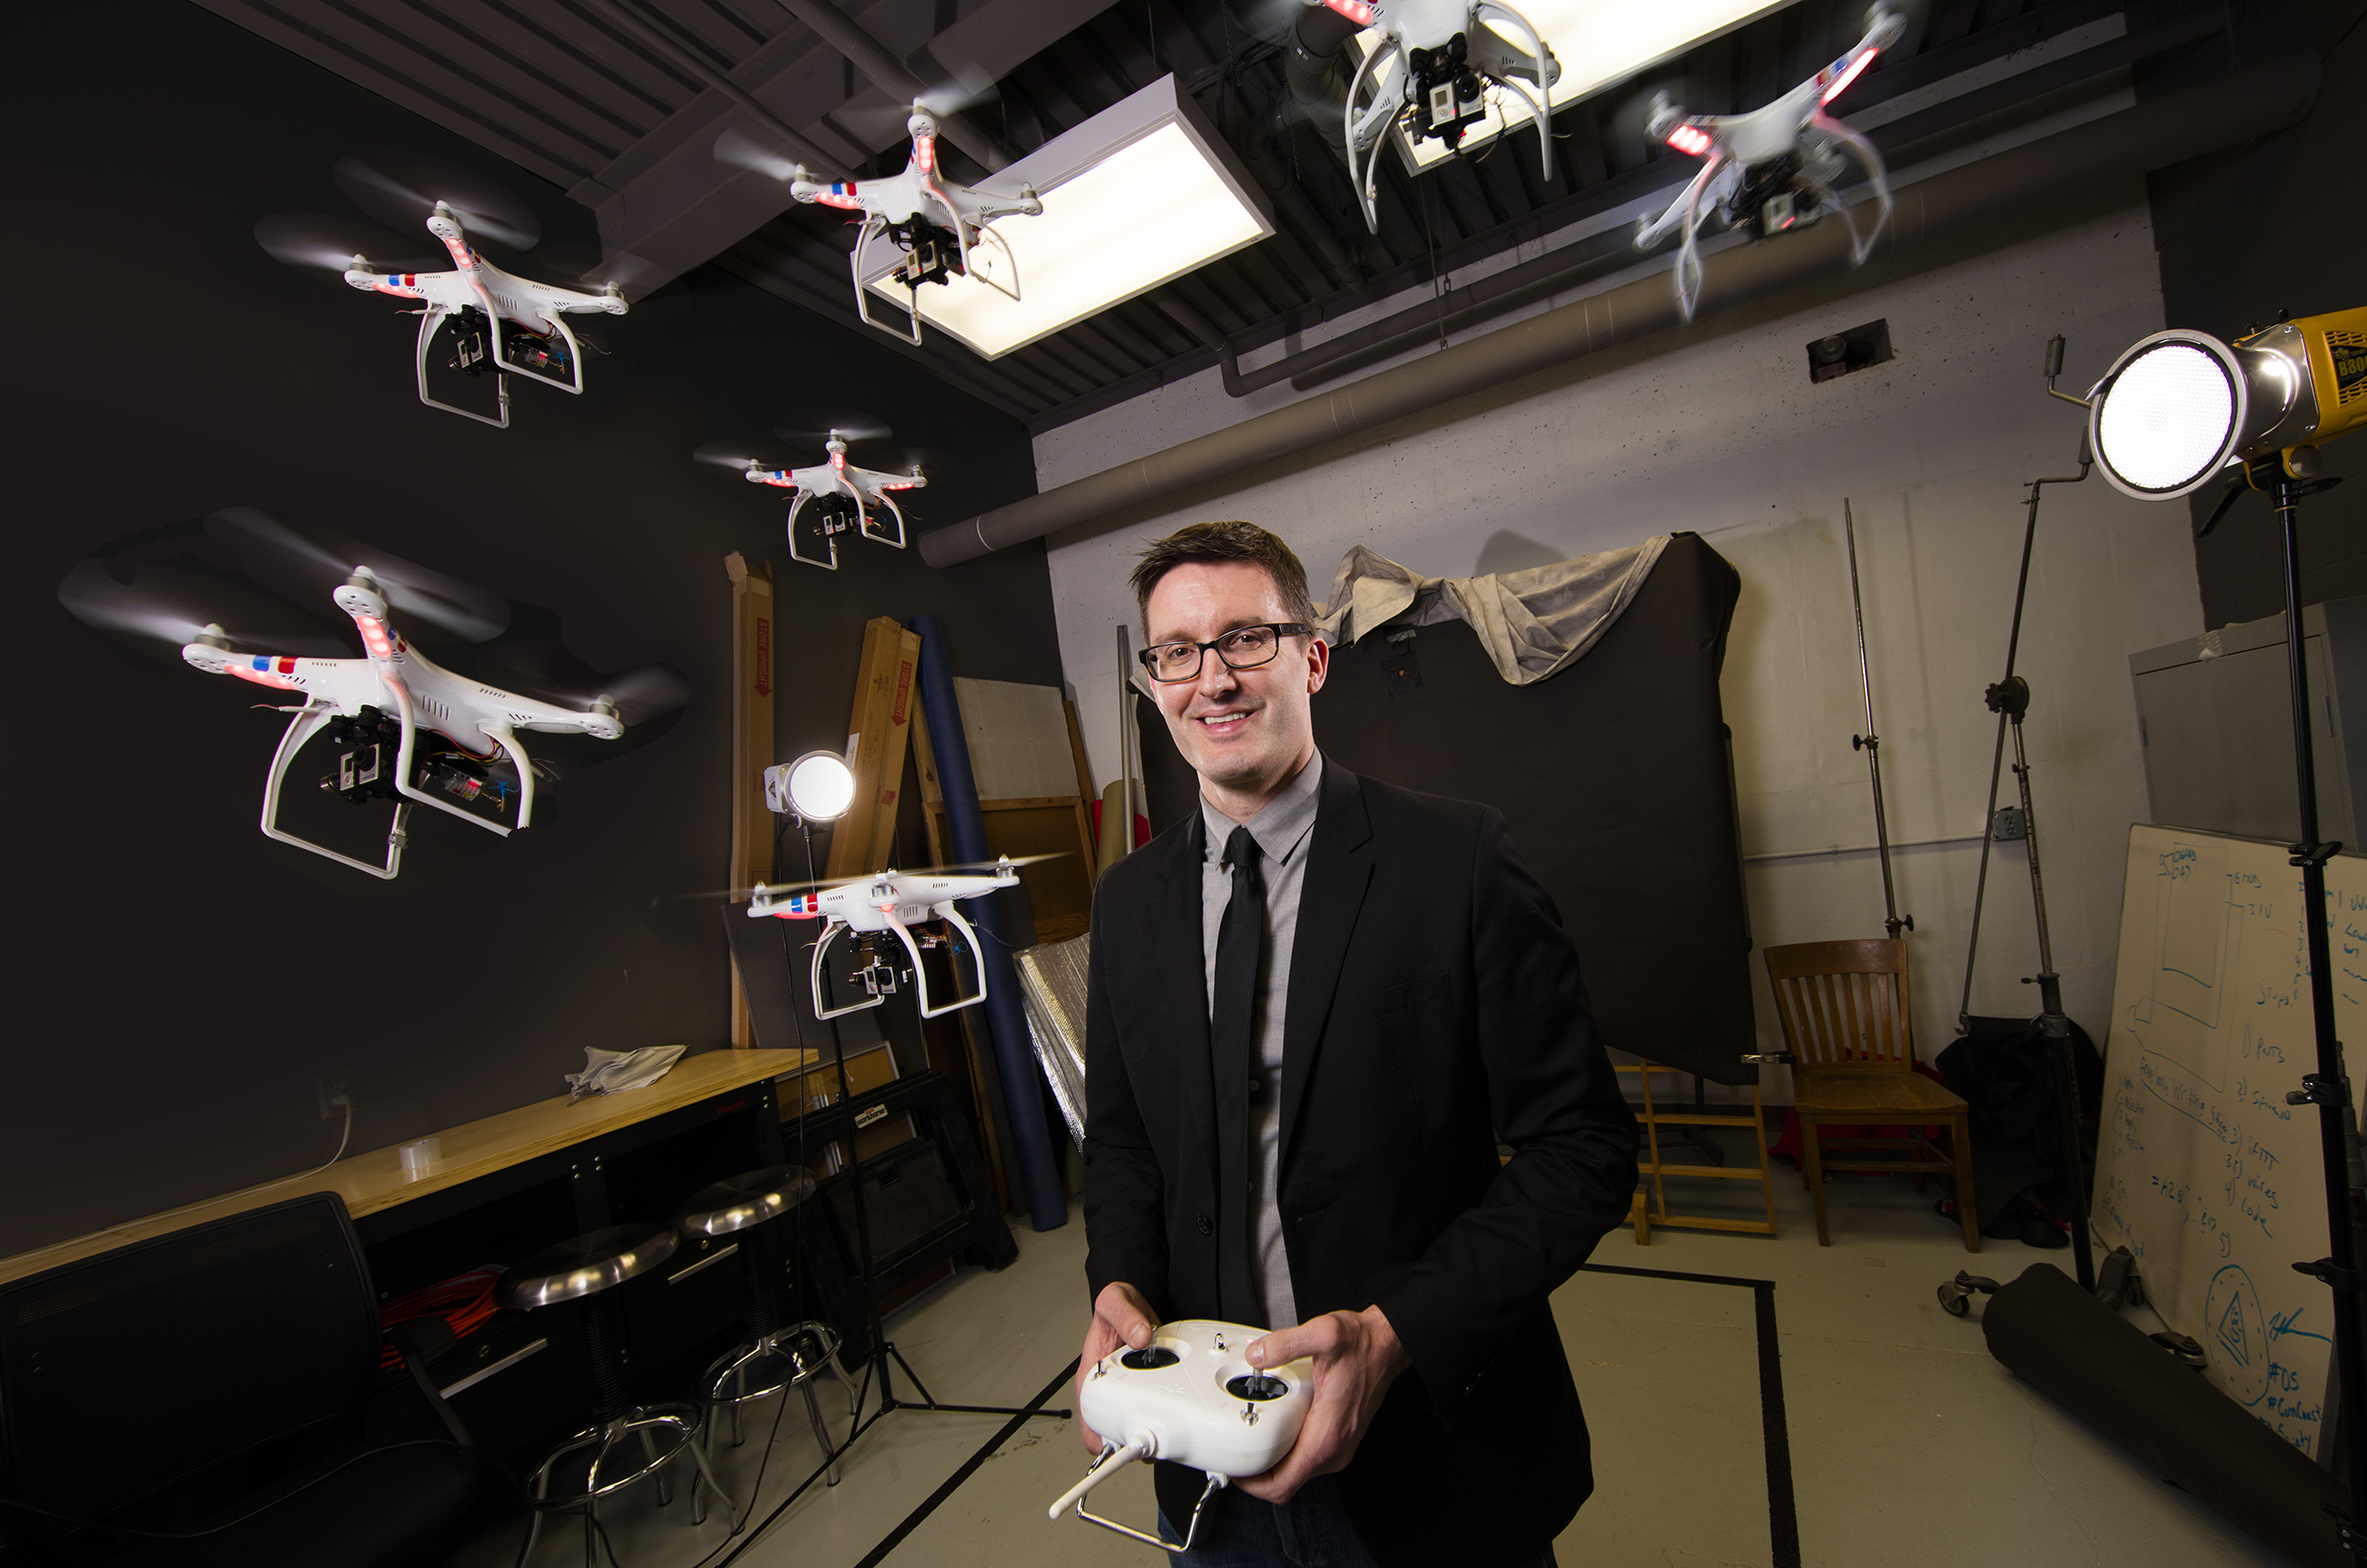 Professor Matt Waite will be leading the Drone Journalism Boot Camp